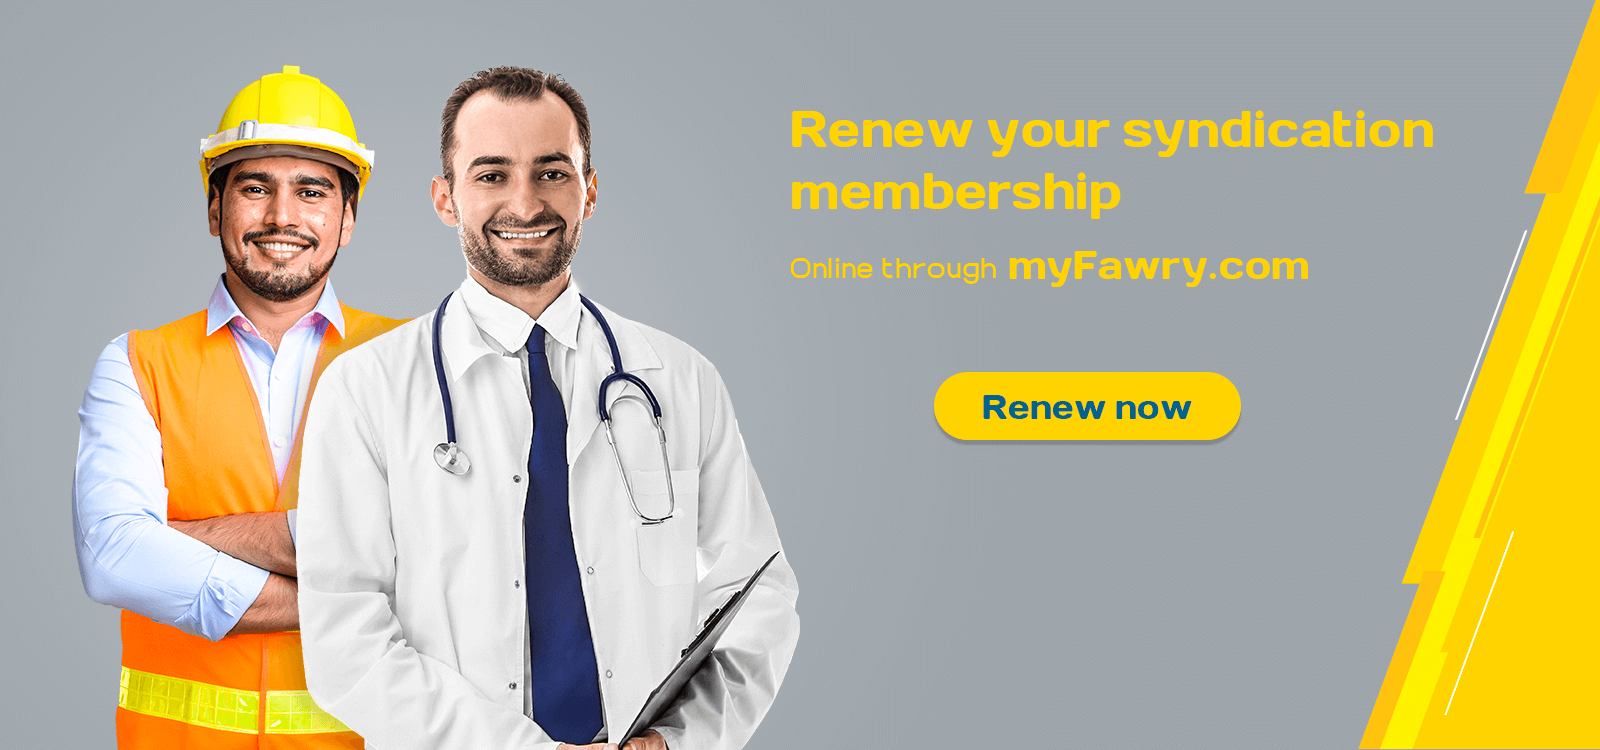 renew your syndication membership with myFawry